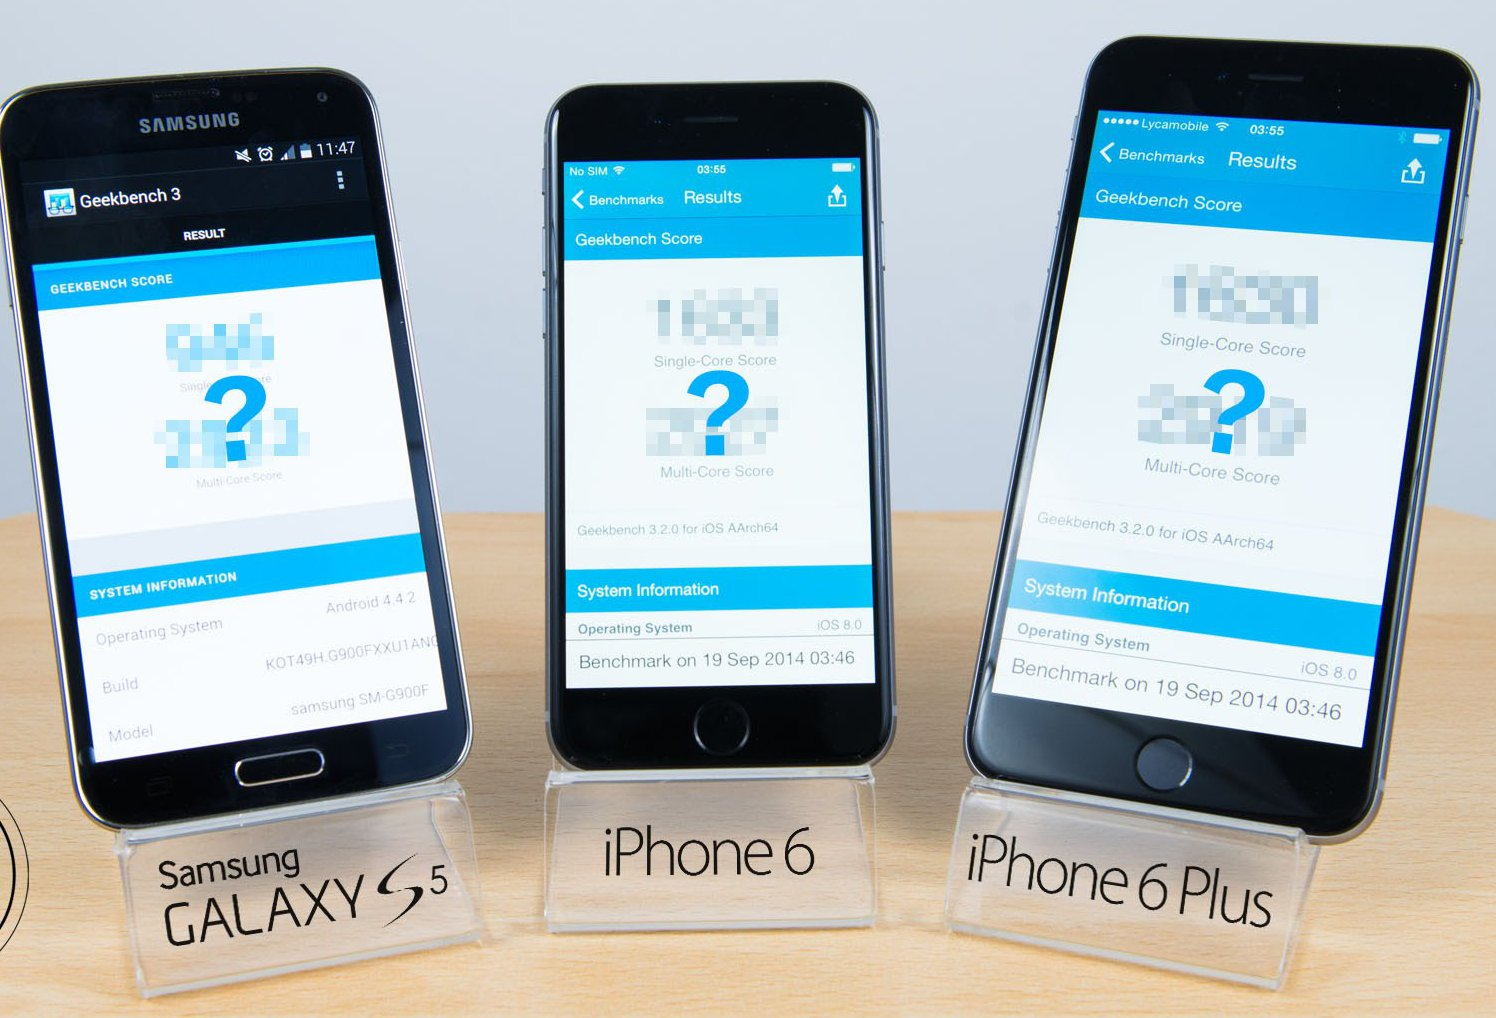 iPhone 6, iPhone 6 Plus And Samsung Galaxy S5 Discounted At